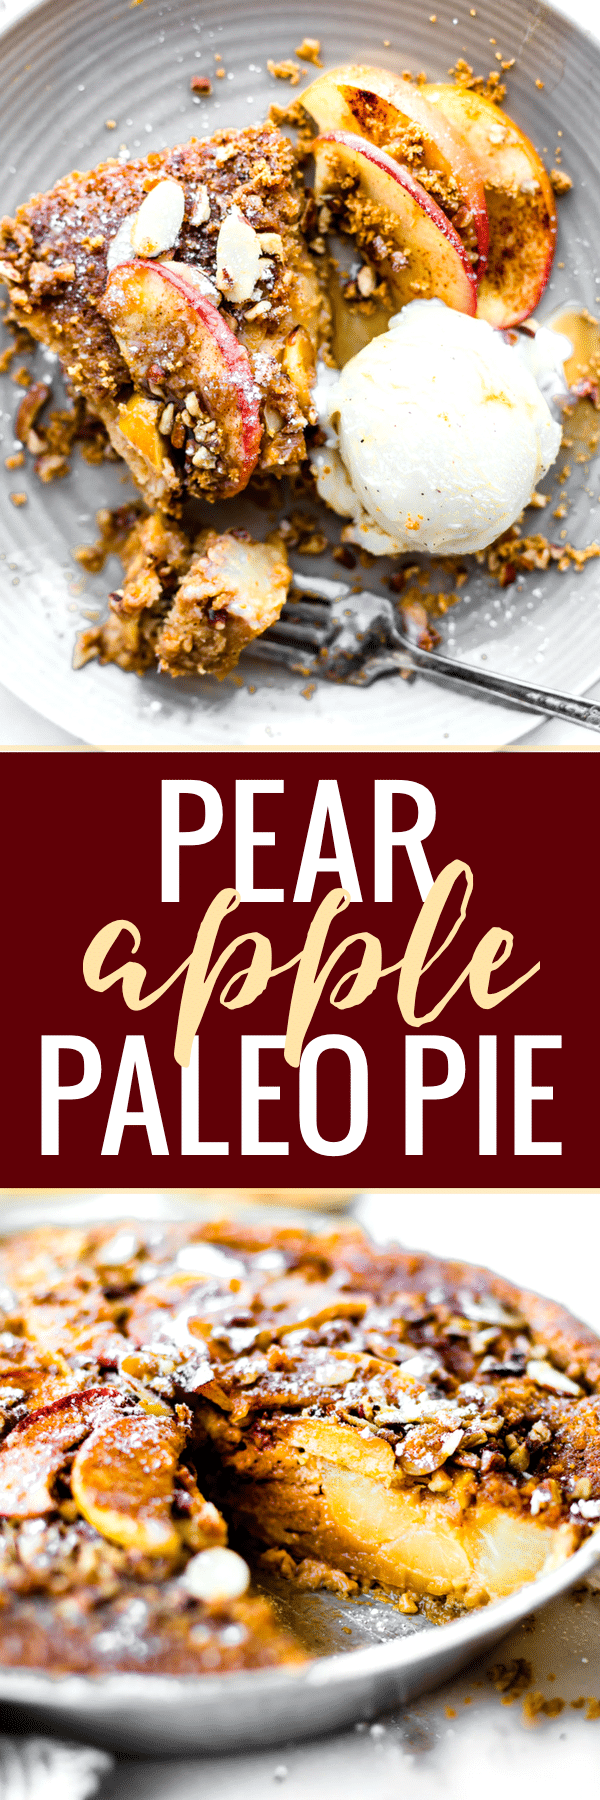 Pear apple pie is an impossibly easy paleo pie recipe! Simple to make with healthy ingredients & Seasonal fruit. A dairy free Pie that forms it's own crust. Don't forget the nutty almond pecan topping!